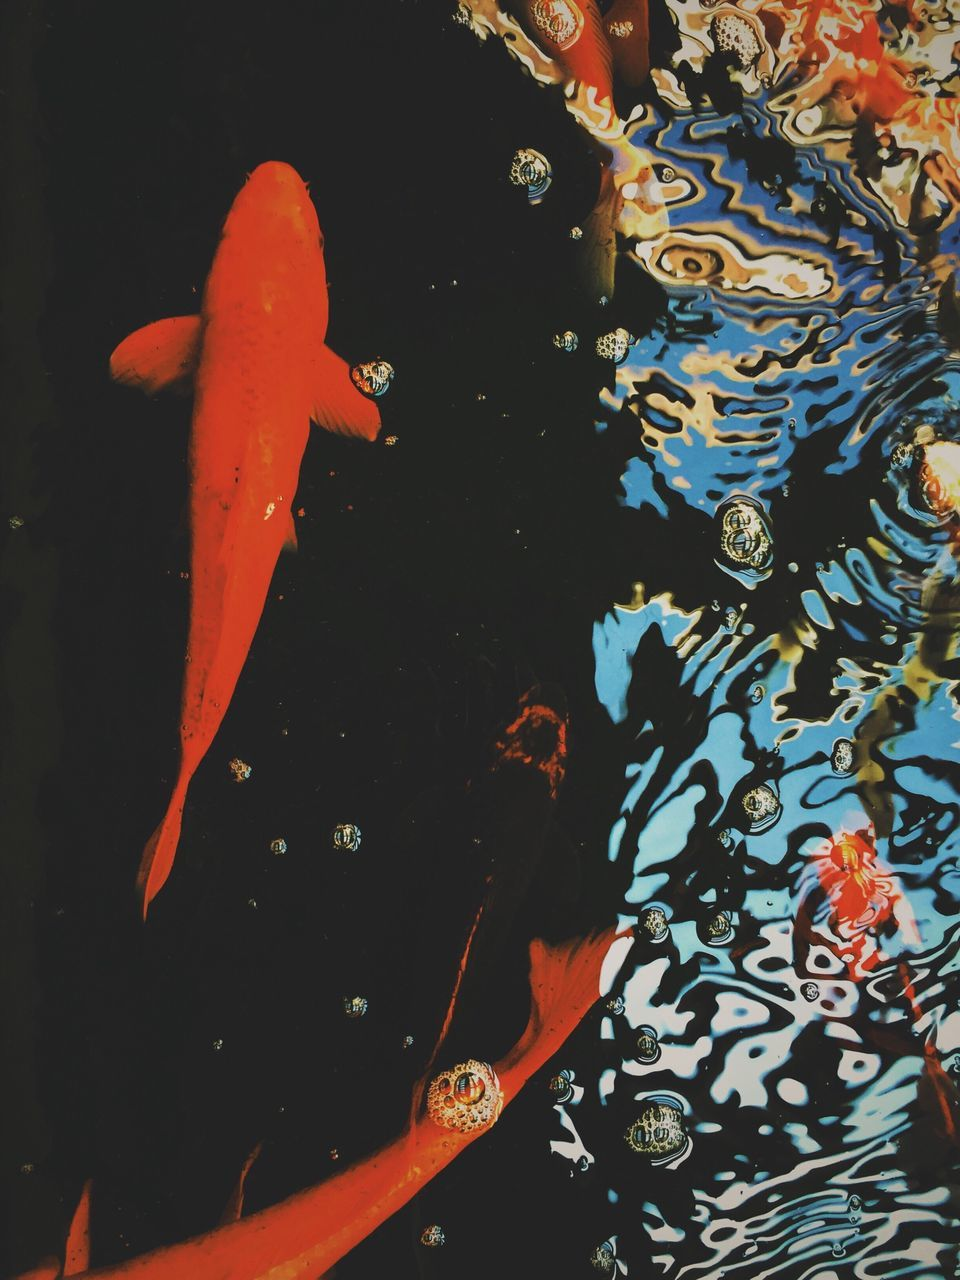 Directly Above Shot Of Koi Carp Swimming In Pond